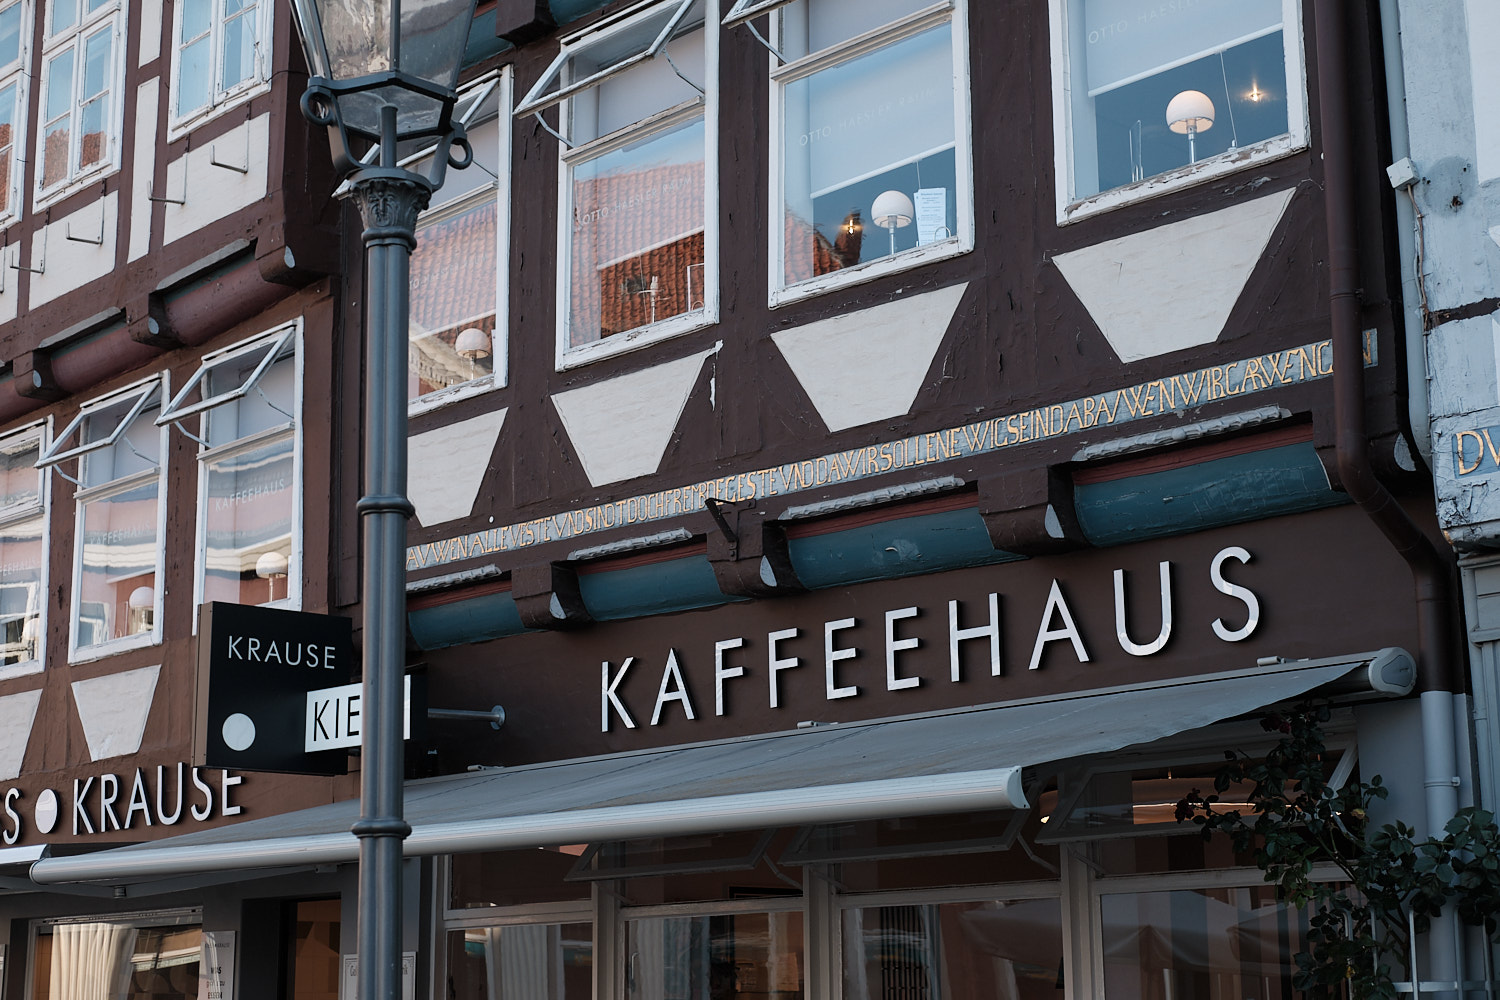 A late afternoon closure to the day in the streets of the old town in Celle and yet a Bauhaus styled Cafe.